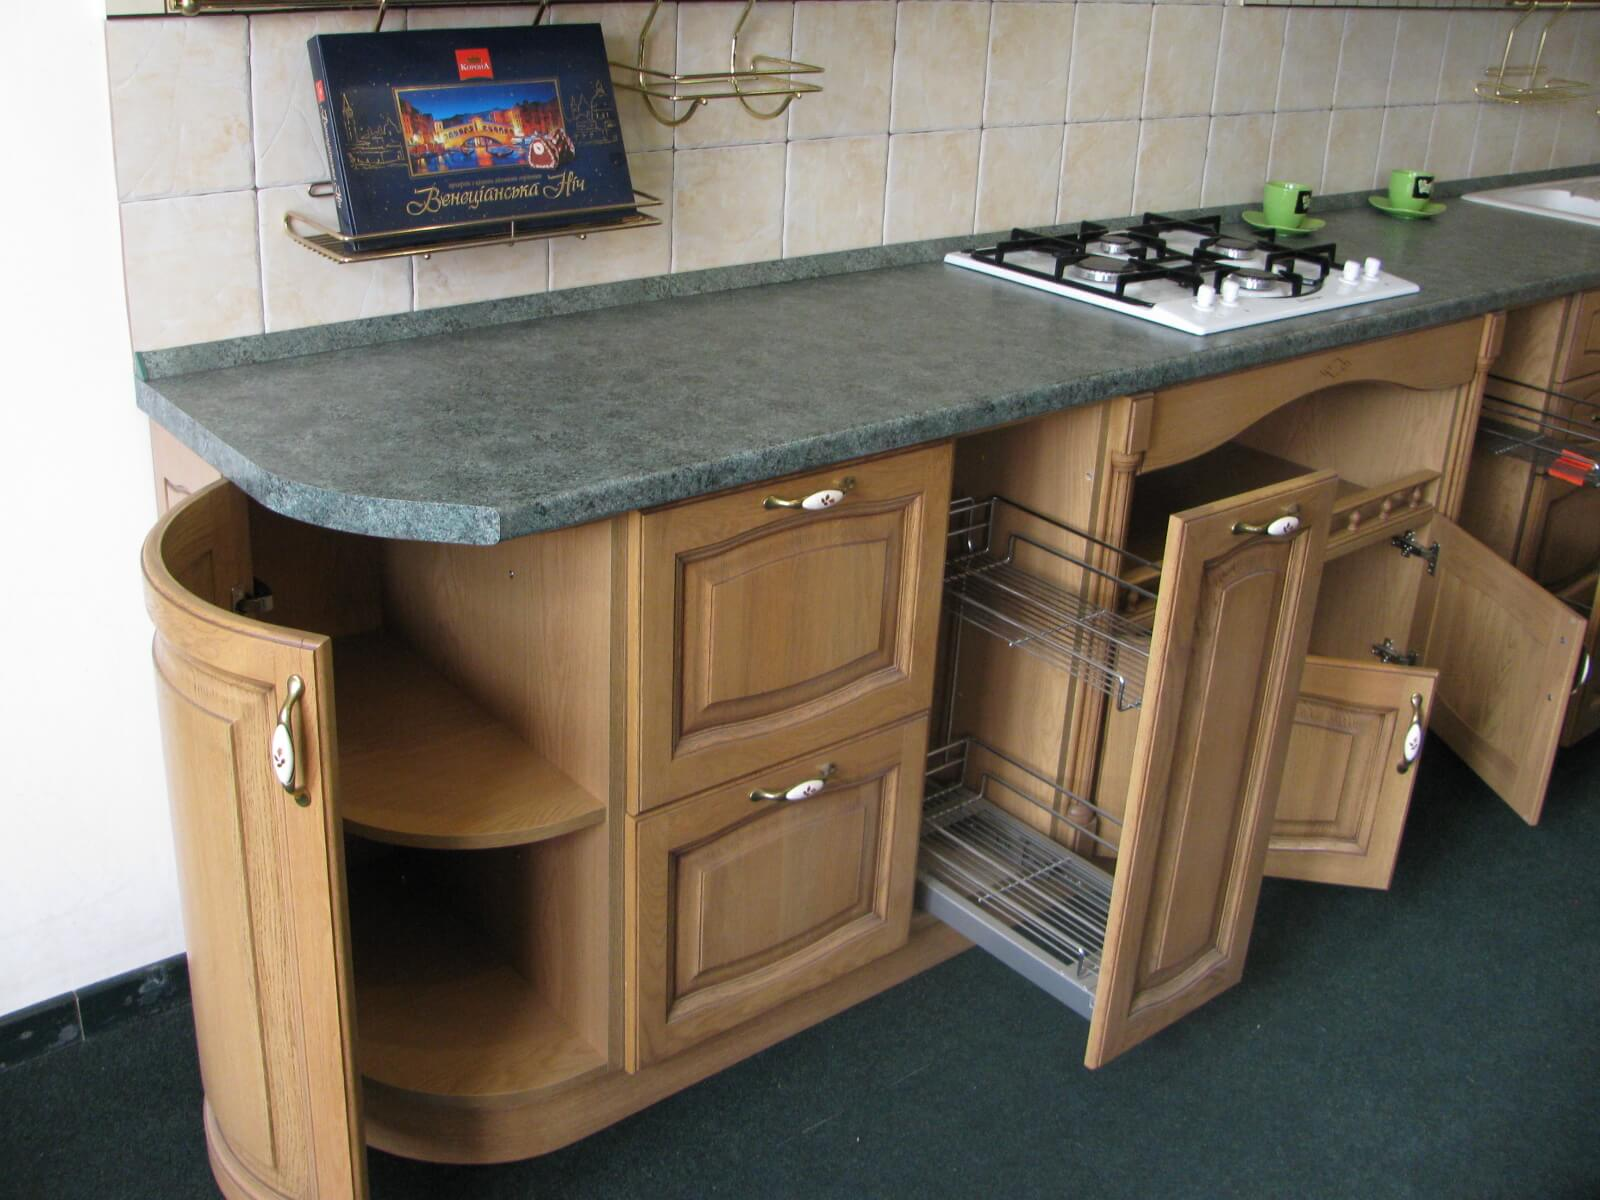 10 Kitchen Custom Custom Cabinets for Unique Functional Interior. Semicircular cabinet at the edge of the set